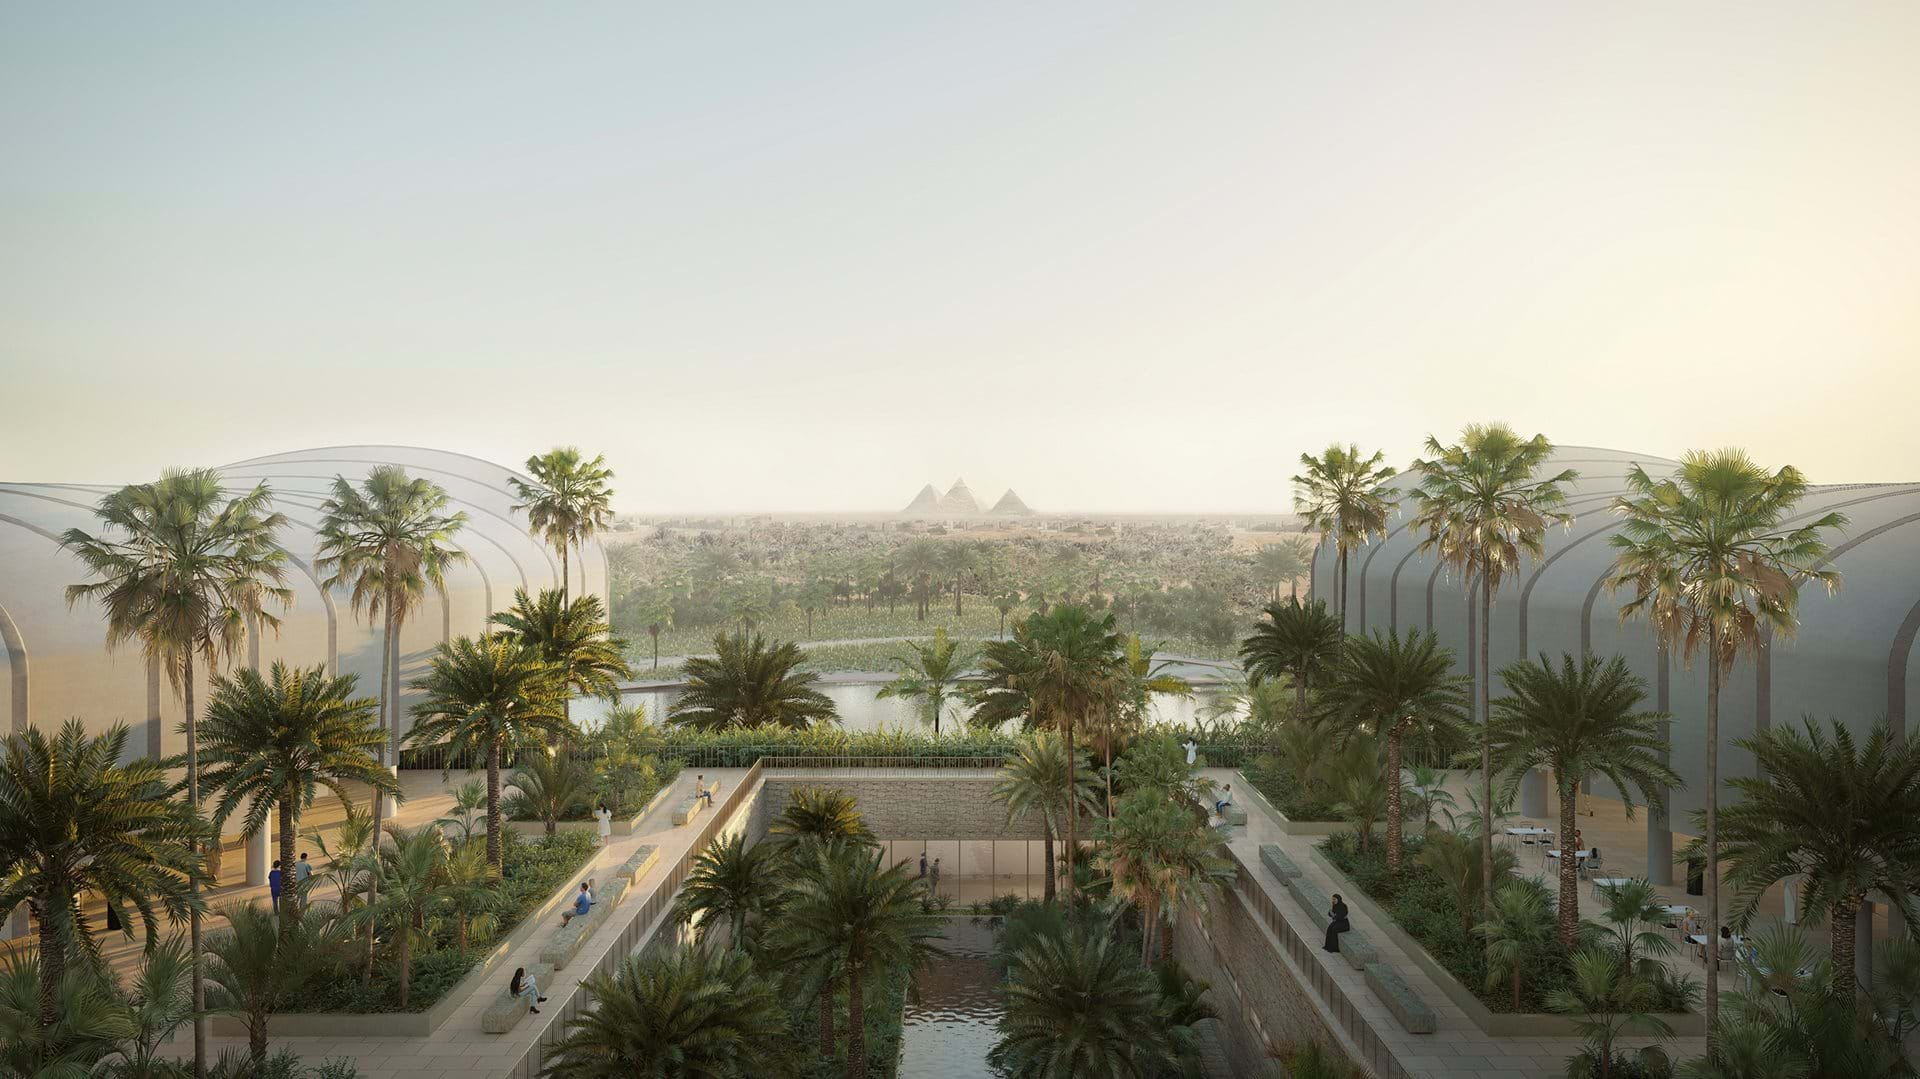 Humanizing Public Design-Foster&Partners Hospital in Cairo